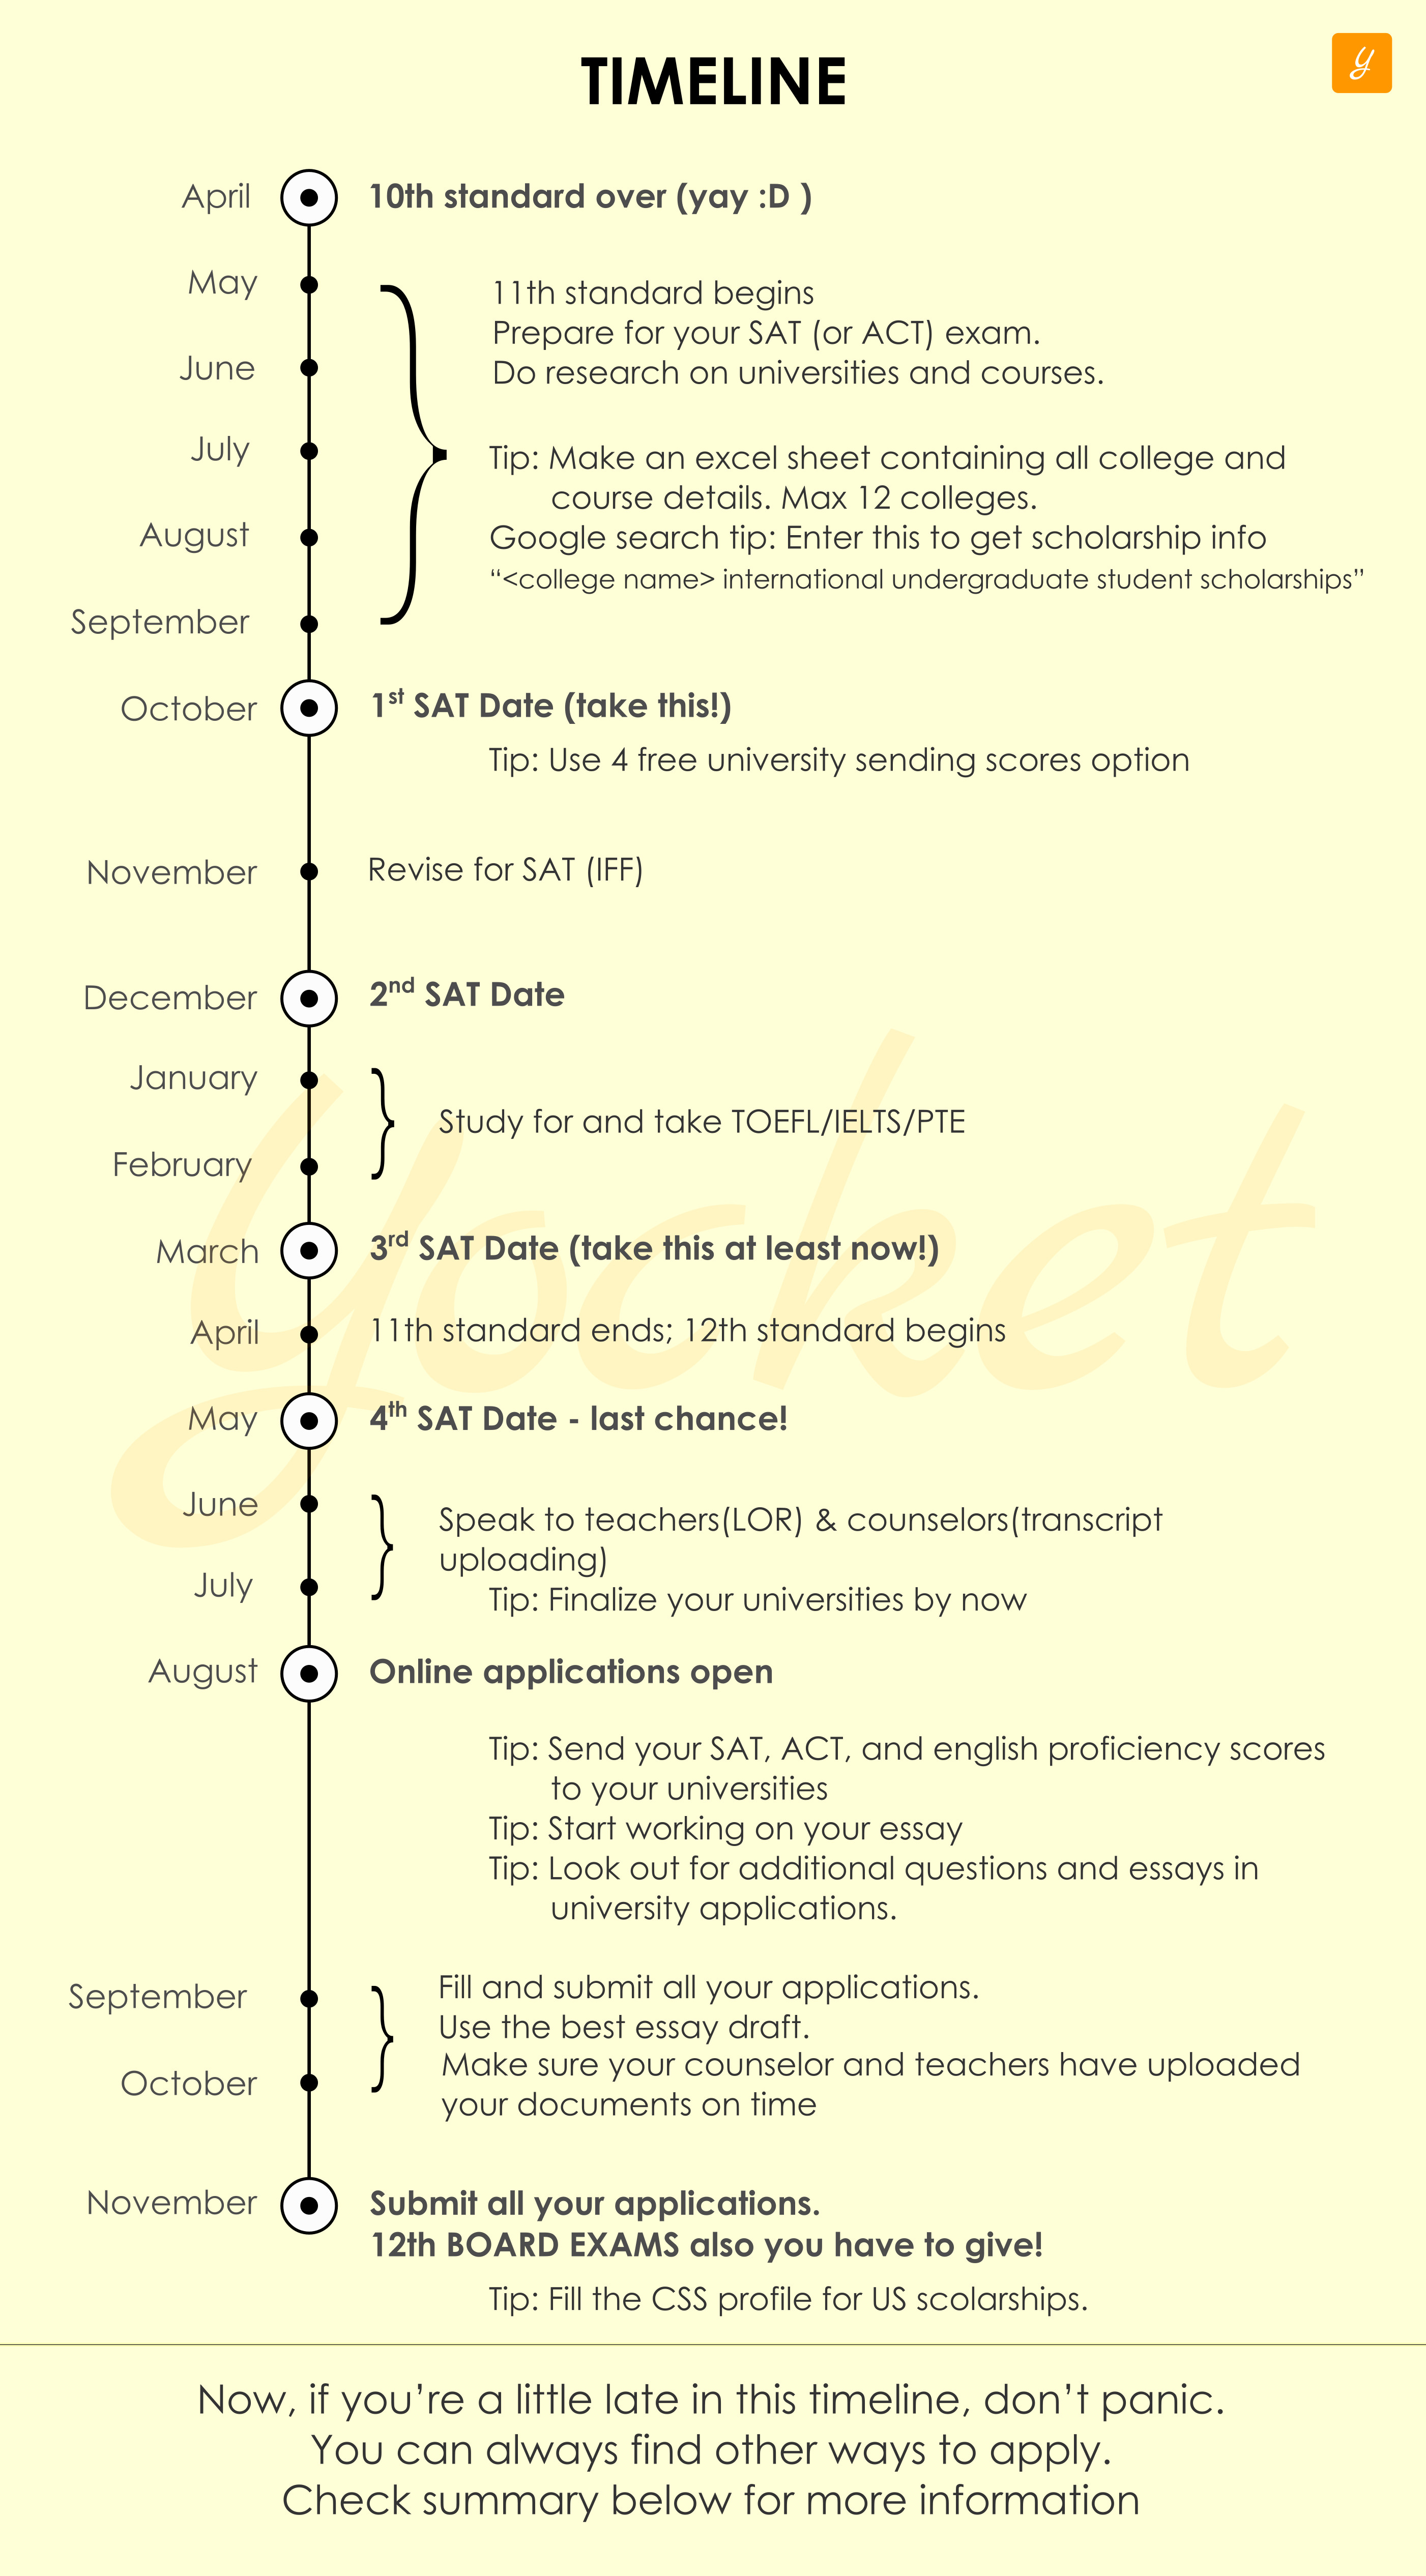 image showing timeline of application process to apply for undergraduation abroad